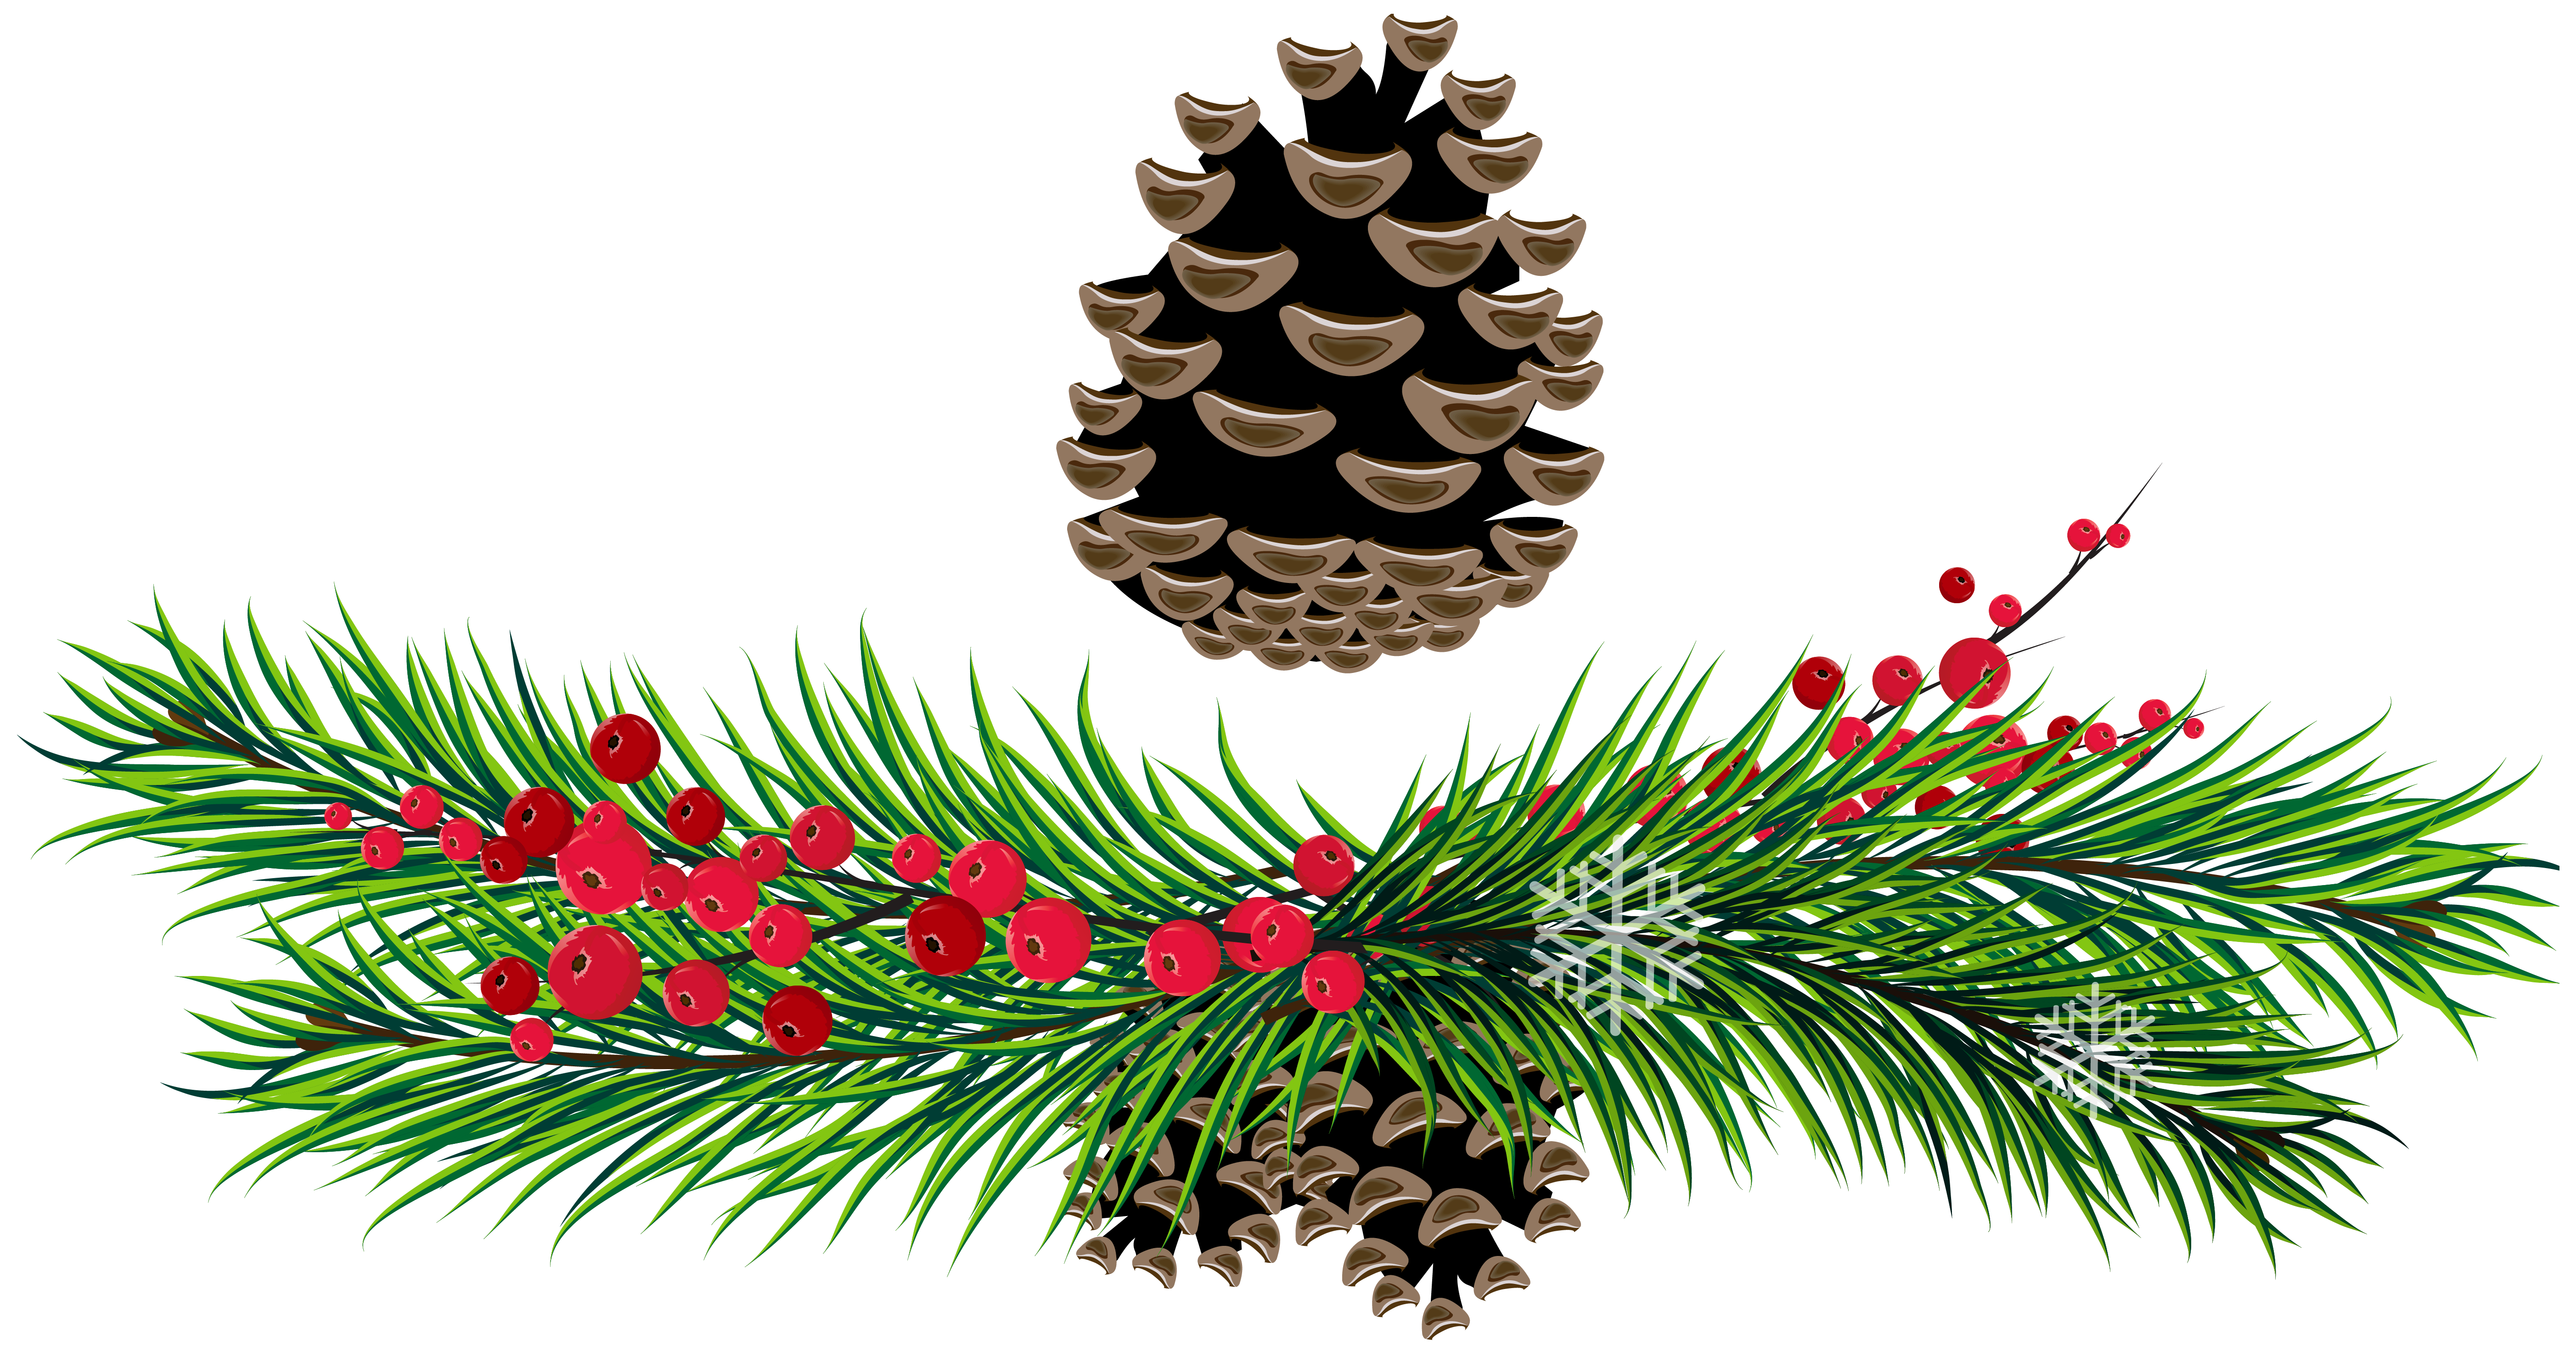 Pine clipart #5, Download drawings